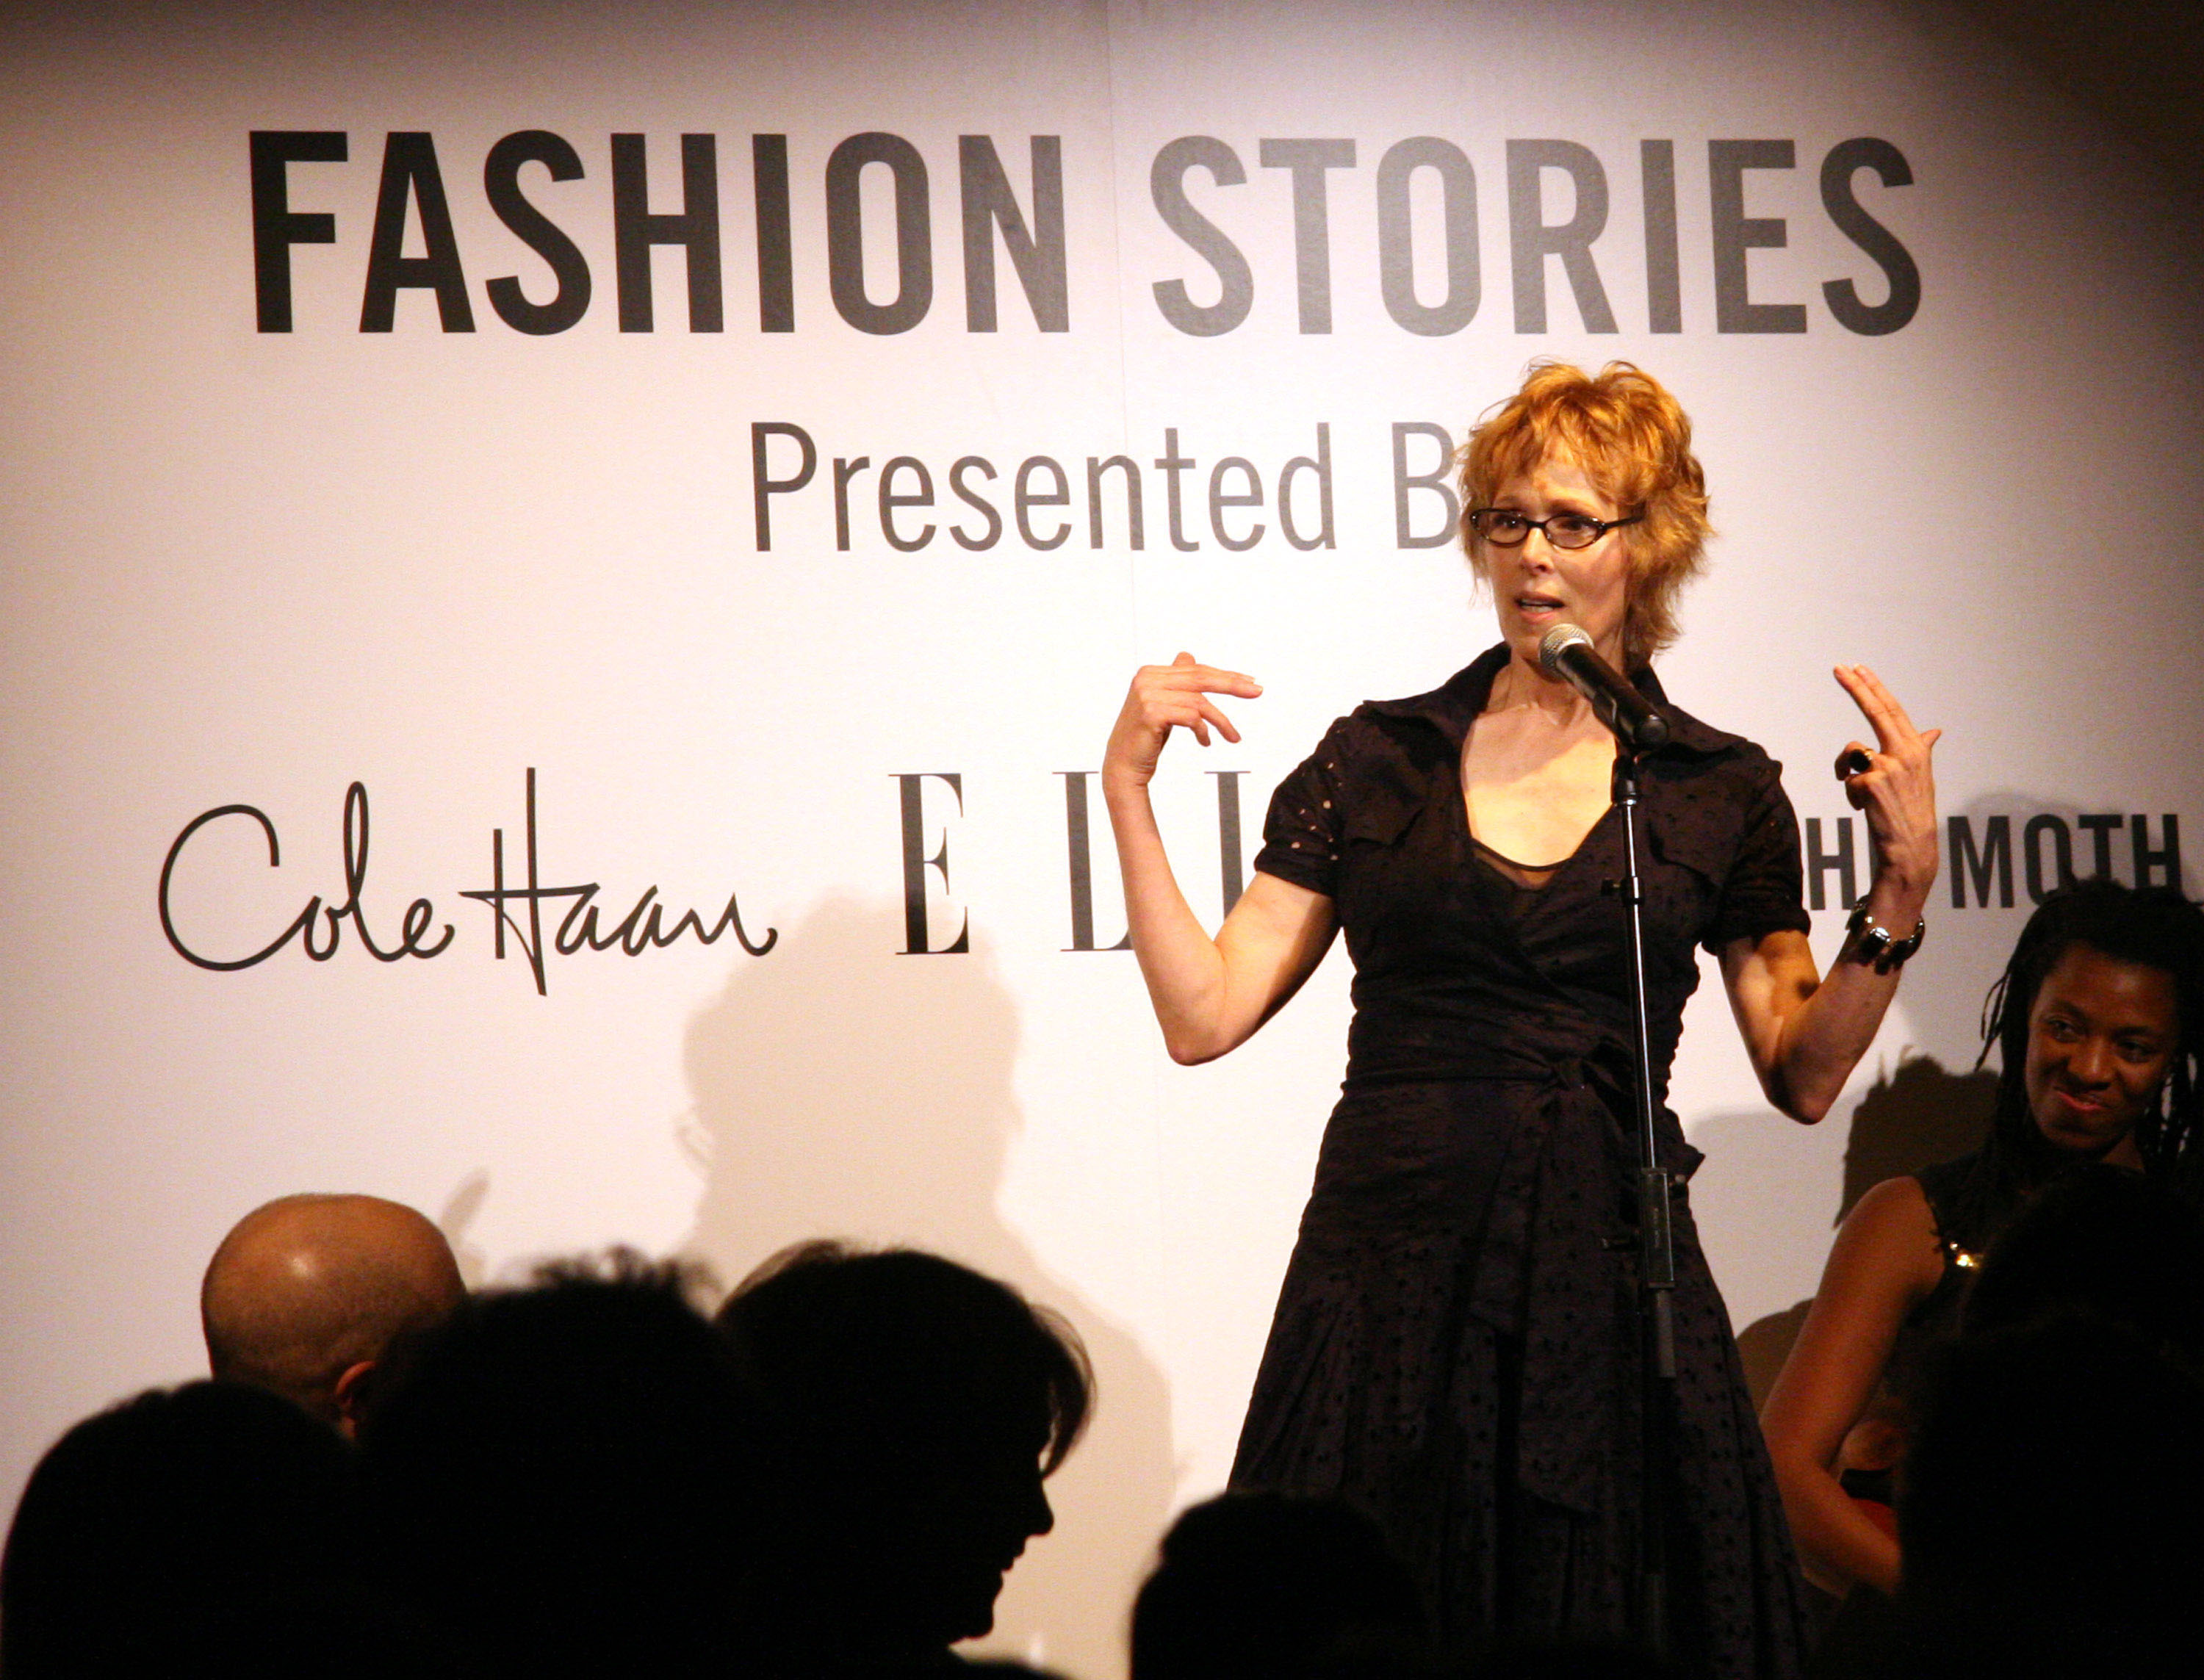 E. Jean Carroll during Elle Magazine Party - September 20, 2006 at 137 West 26th. St in New York City, New York, United States.